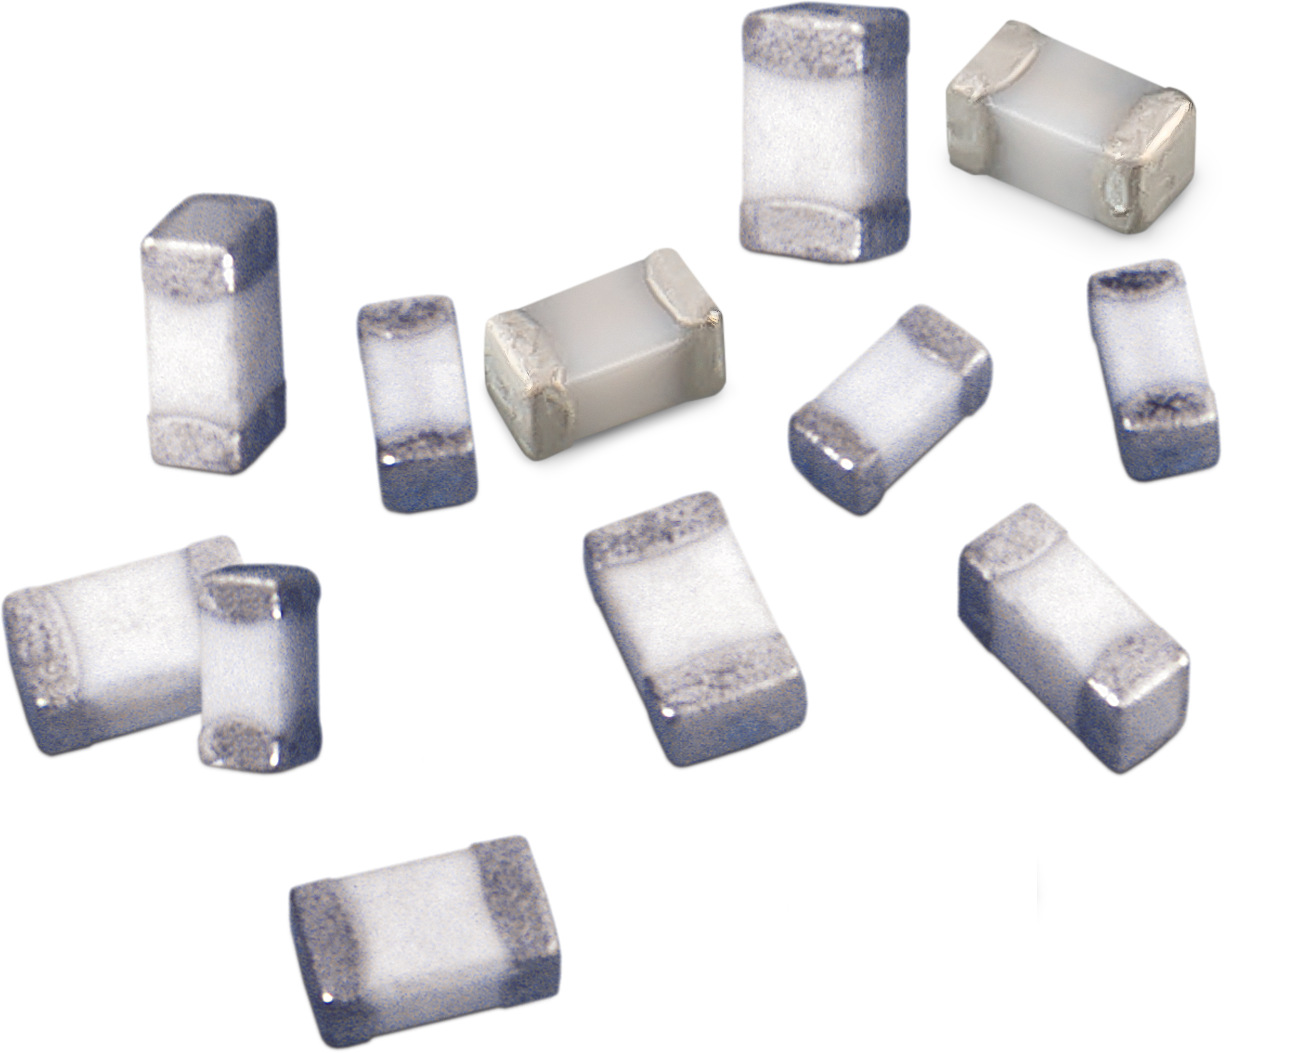 WE-MK Multilayer Ceramic SMD Inductor | Passive Components